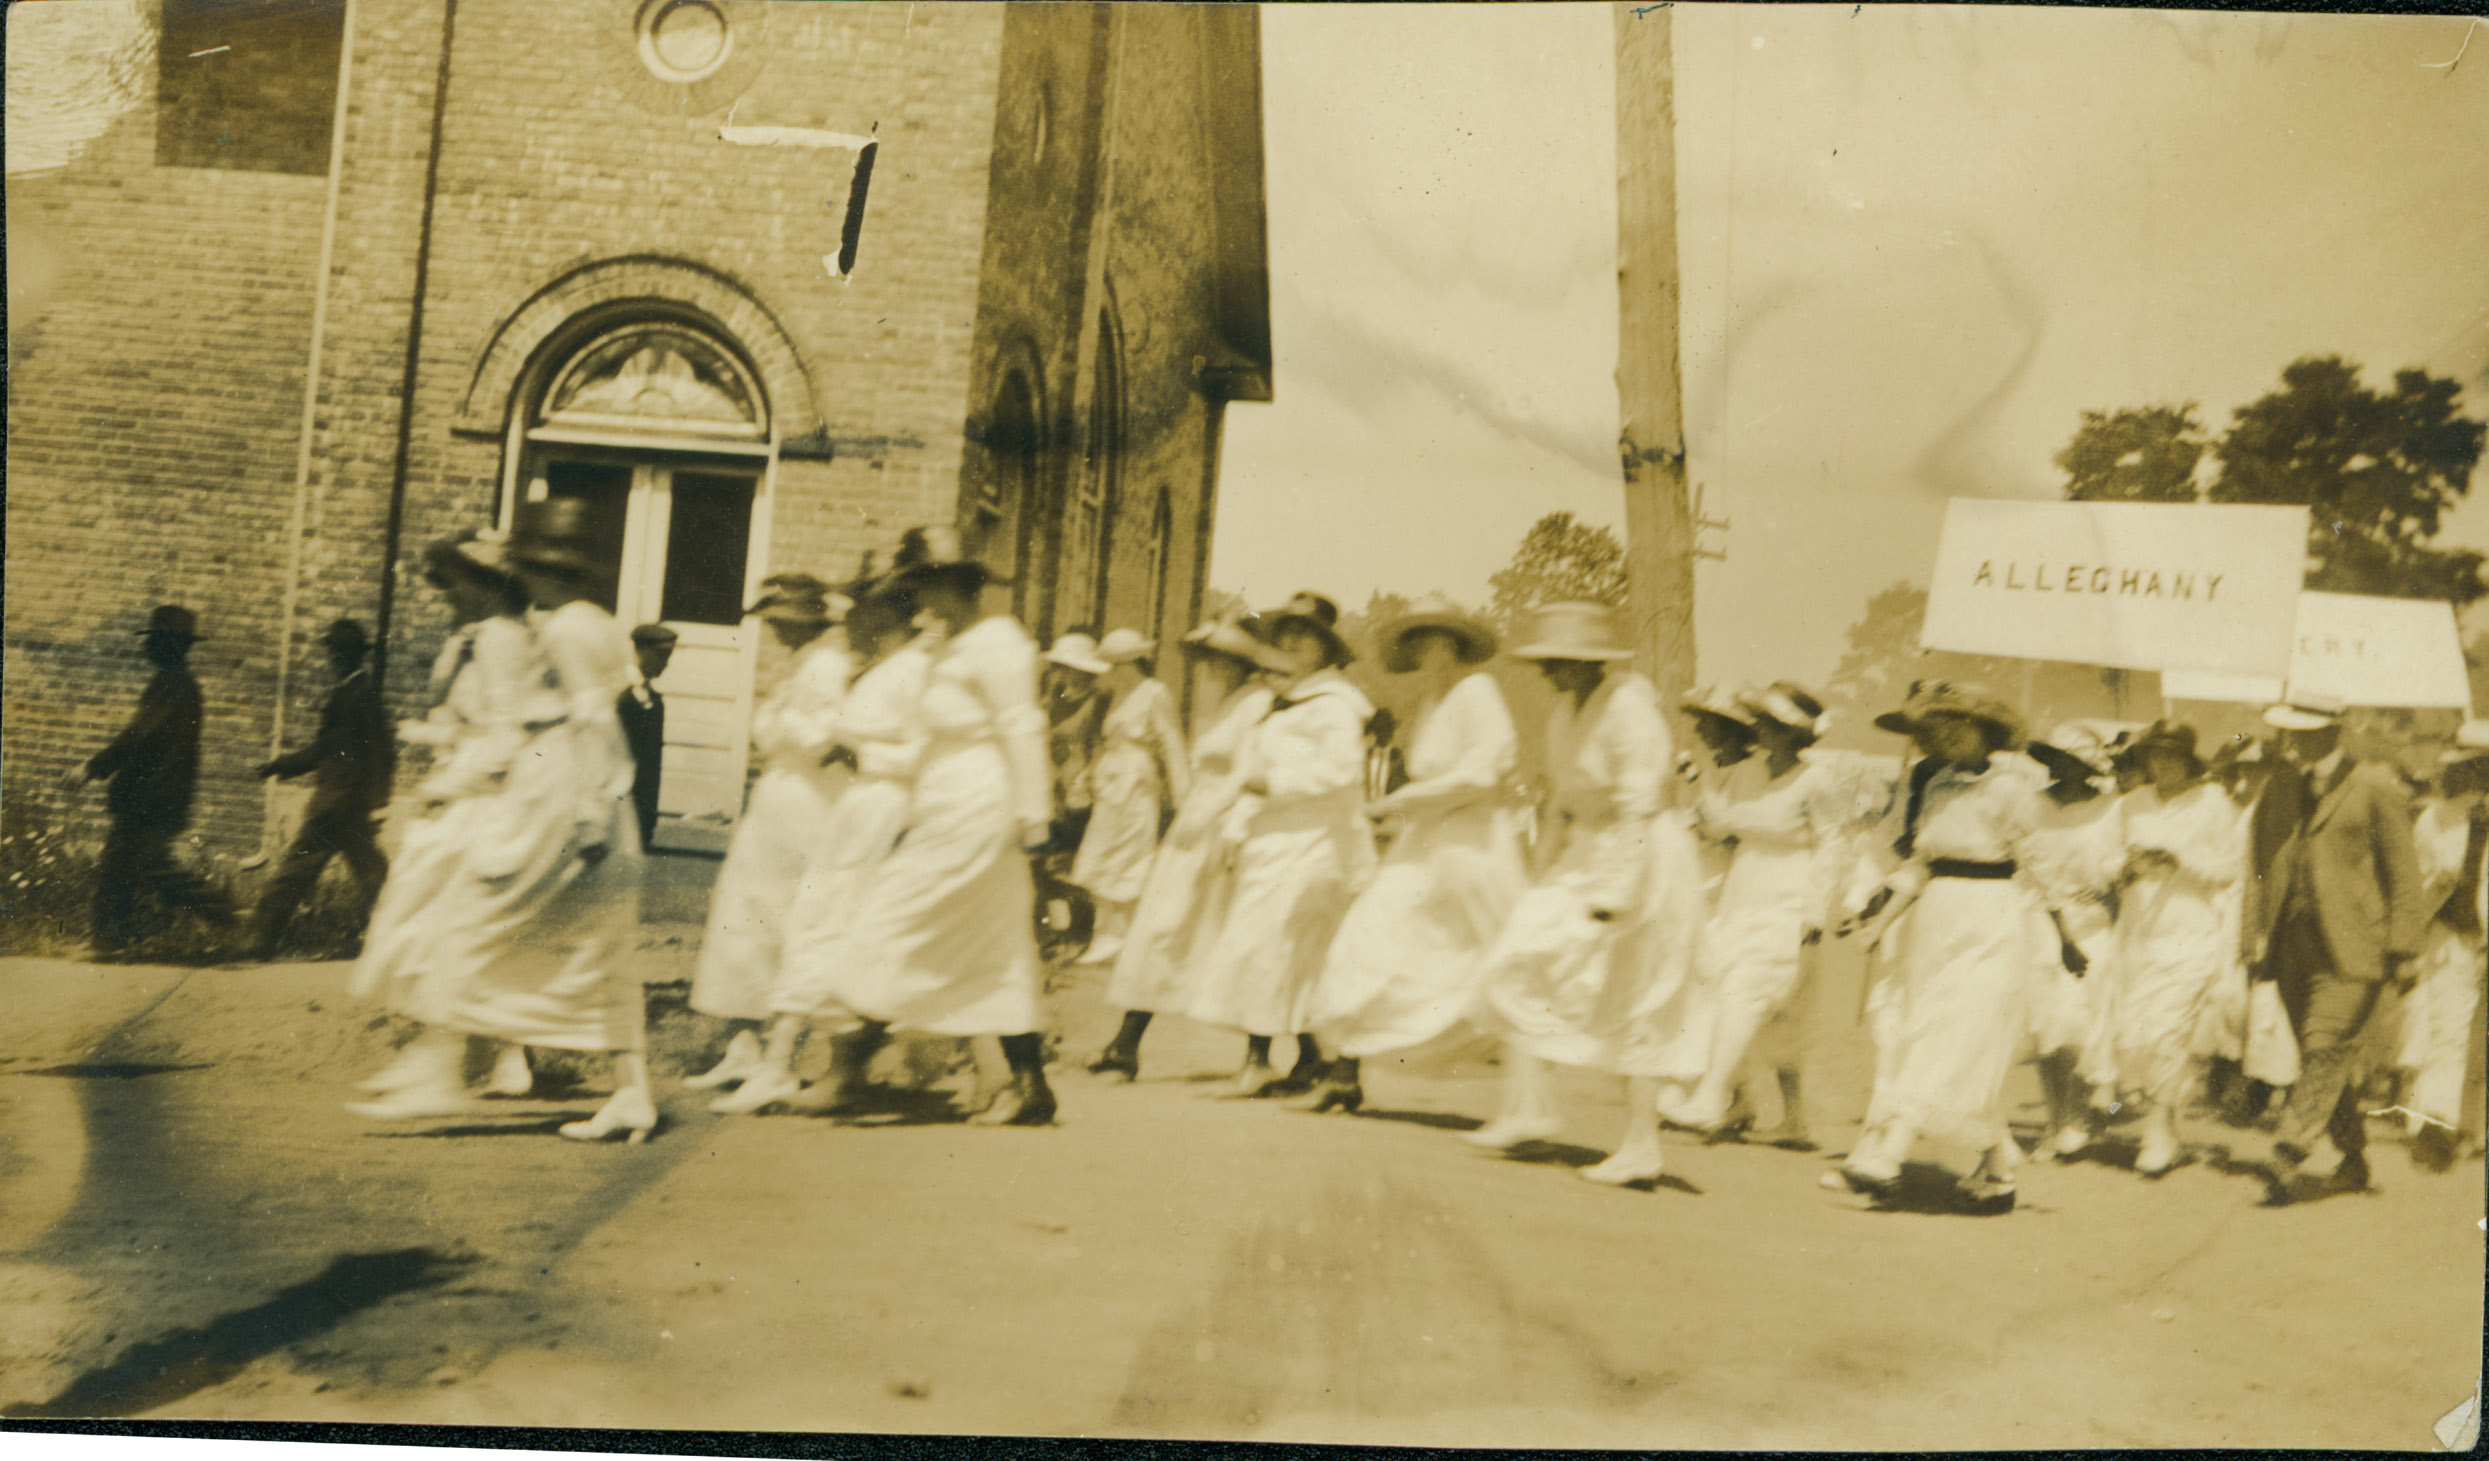 """Women marching in the July 4, 1919, parade through Boone turn right from West King St. (then known as """"Main Street"""") onto today's College Street in front of the First Baptist Church (built 1916, demolished 1936). Image courtesy of the H. L. and Gladys Coffey Collection, Digital Watauga Project."""